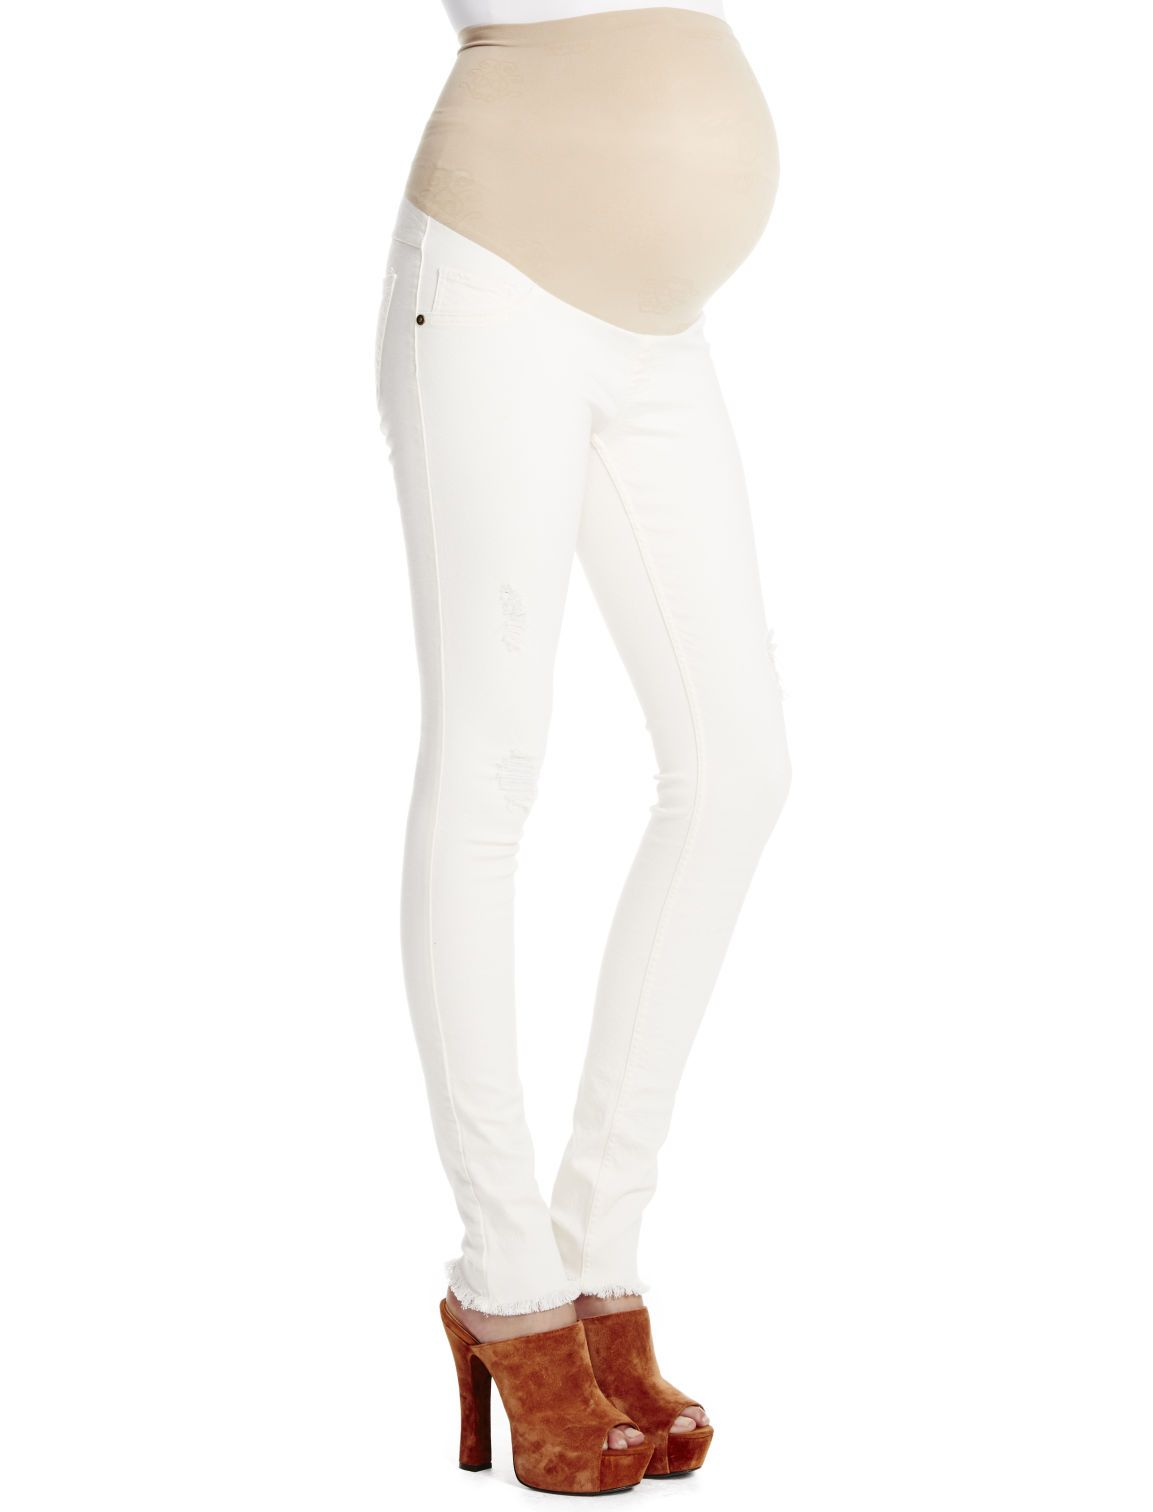 a684135c9fe24 Winter white + frayed hem | Secret fit belly 5 pocket skinny leg maternity  jeans by Jessica Simpson available at Motherhood Maternity